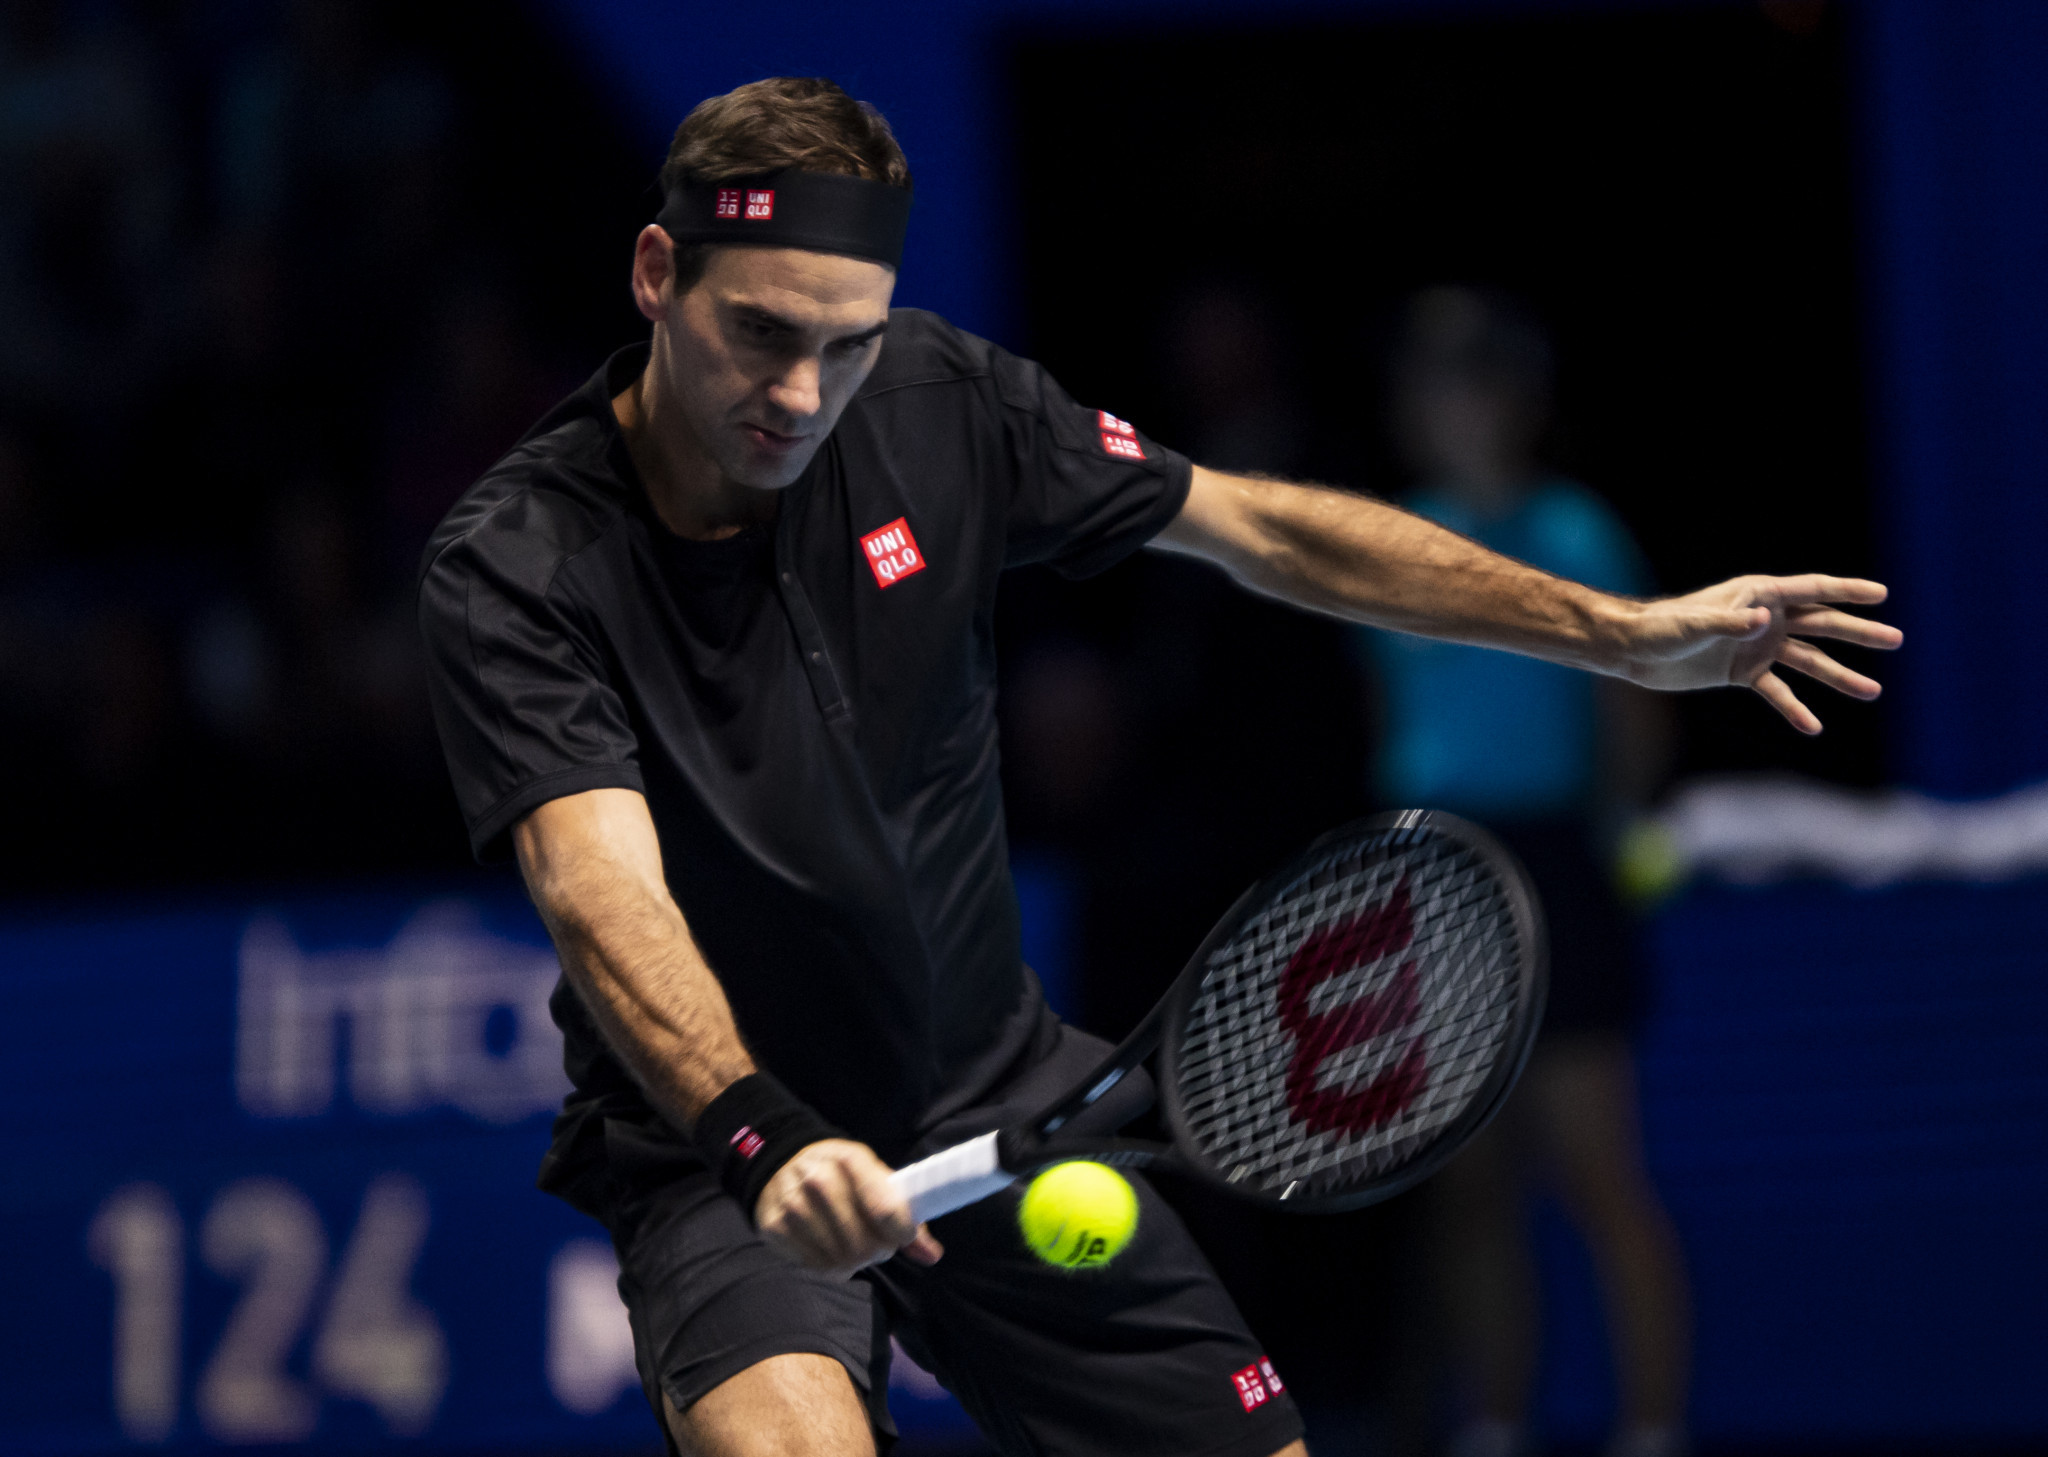 Federer bounces back with win as Thiem stuns Djokovic at ATP Finals